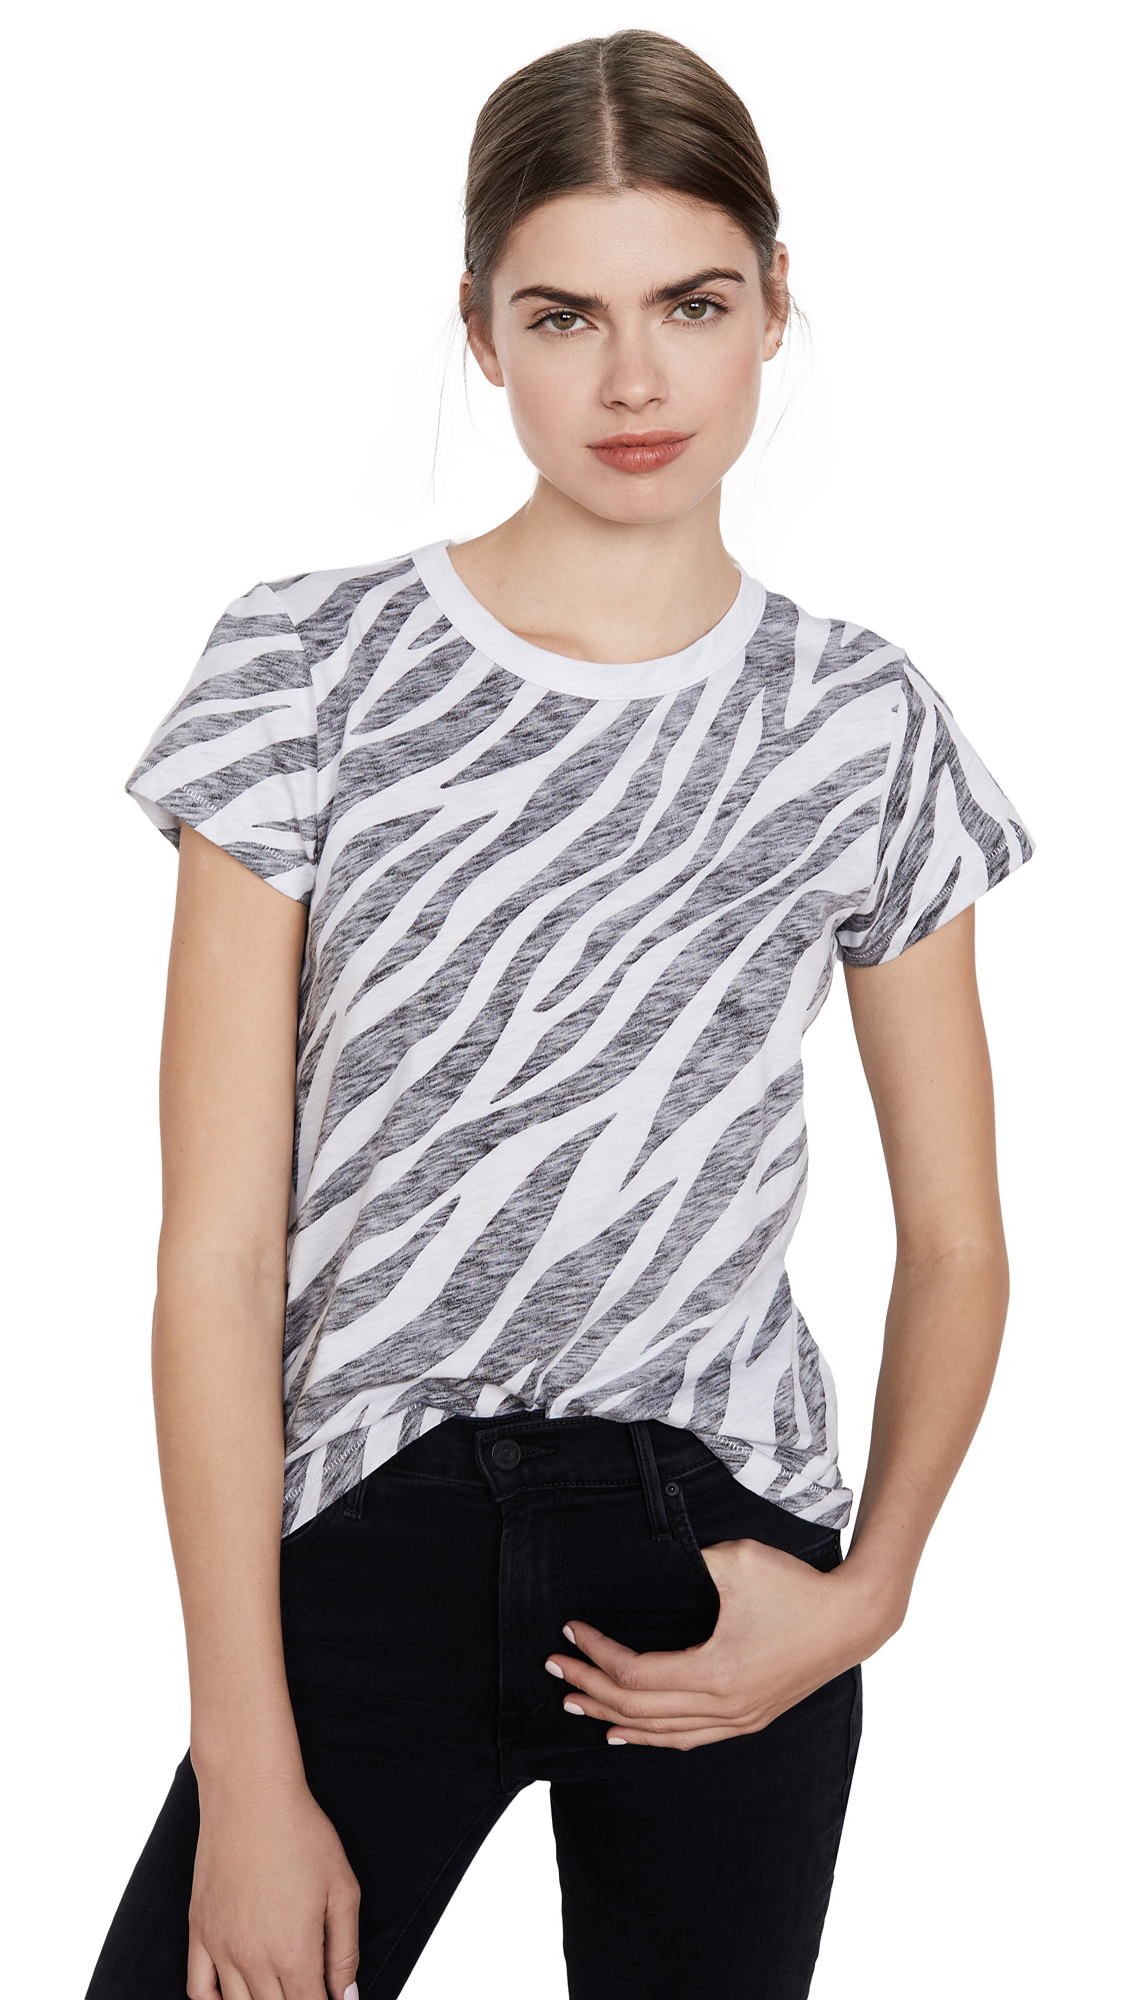 Buy Rag & Bone/JEAN online - photo of Rag & Bone/JEAN All Over Zebra Tee